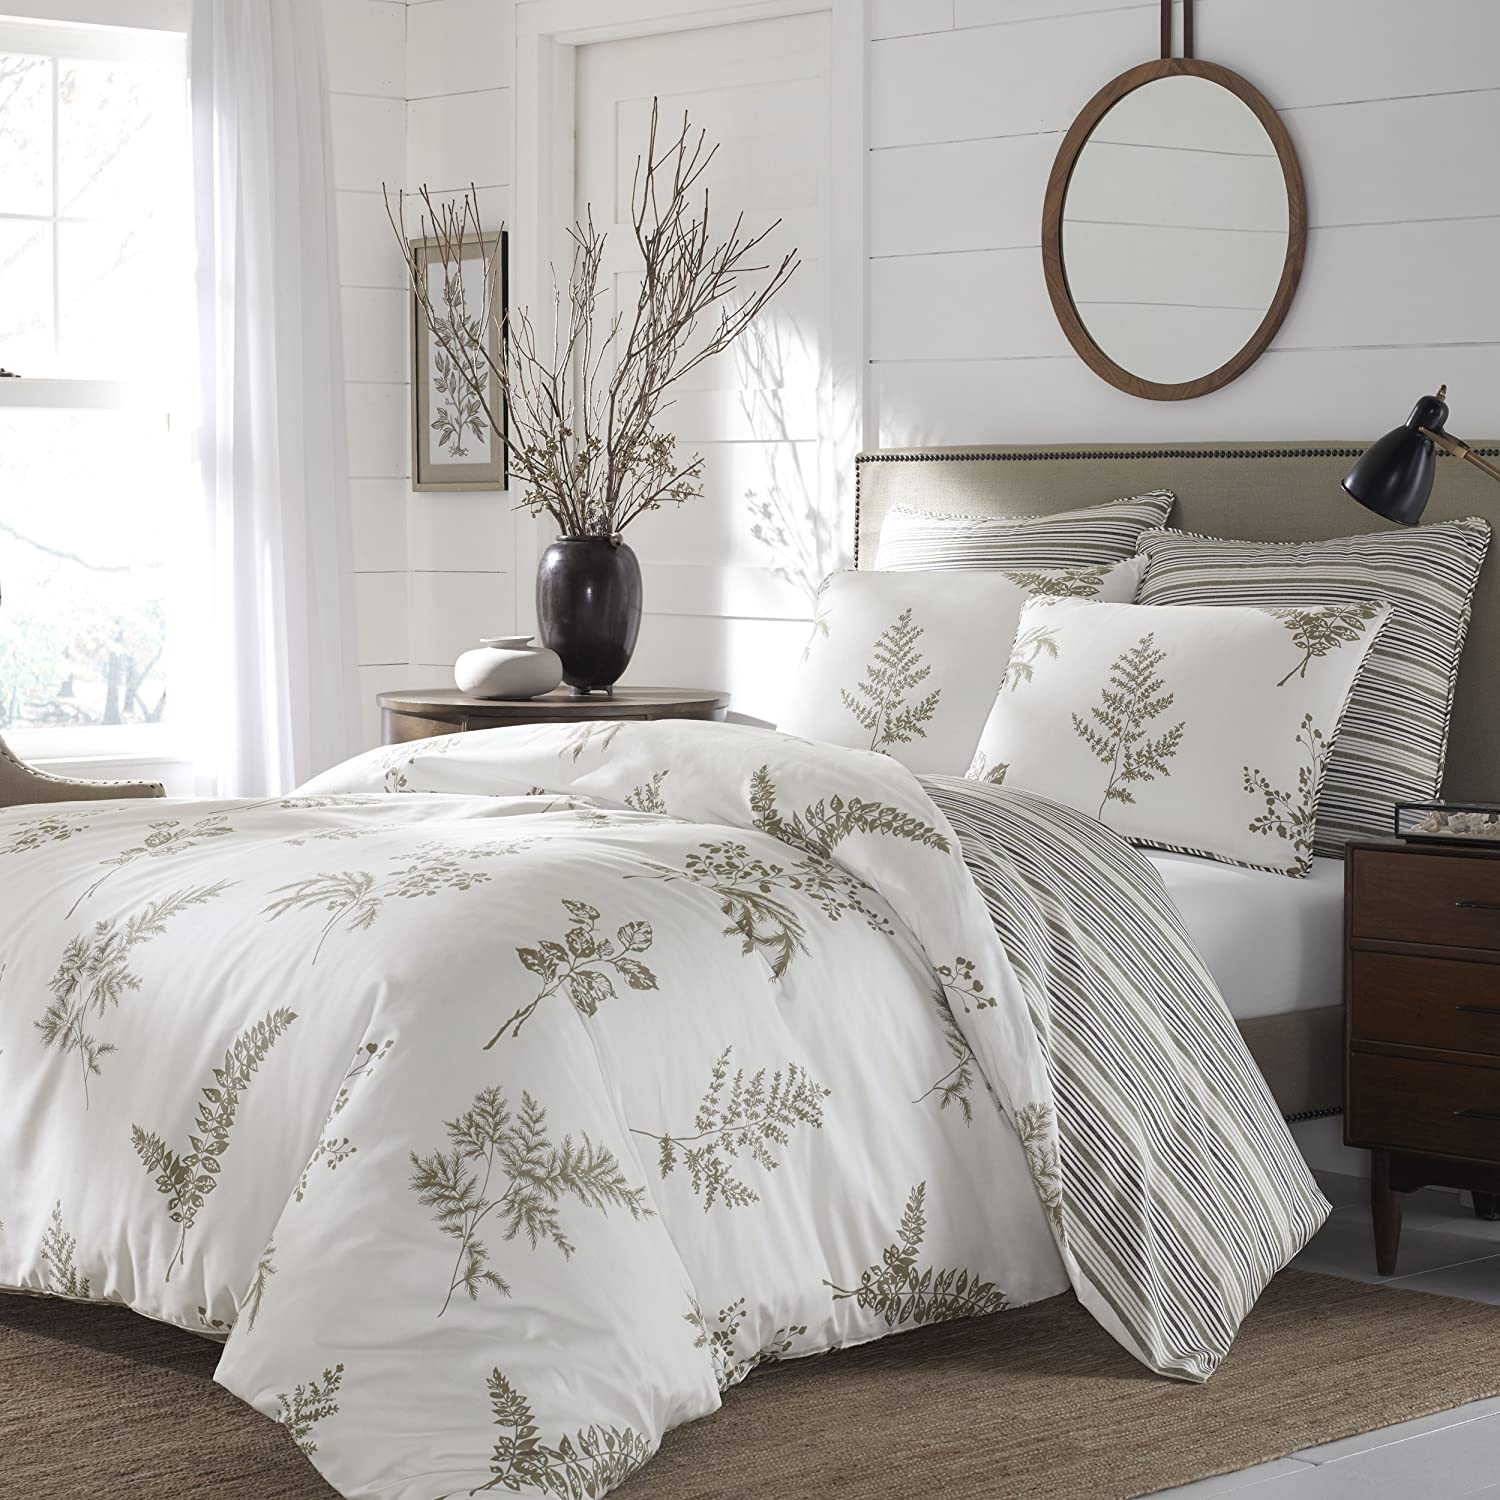 Stone All stores are sold Cottage Willow Comforter Beige Tan Set King NEW before selling